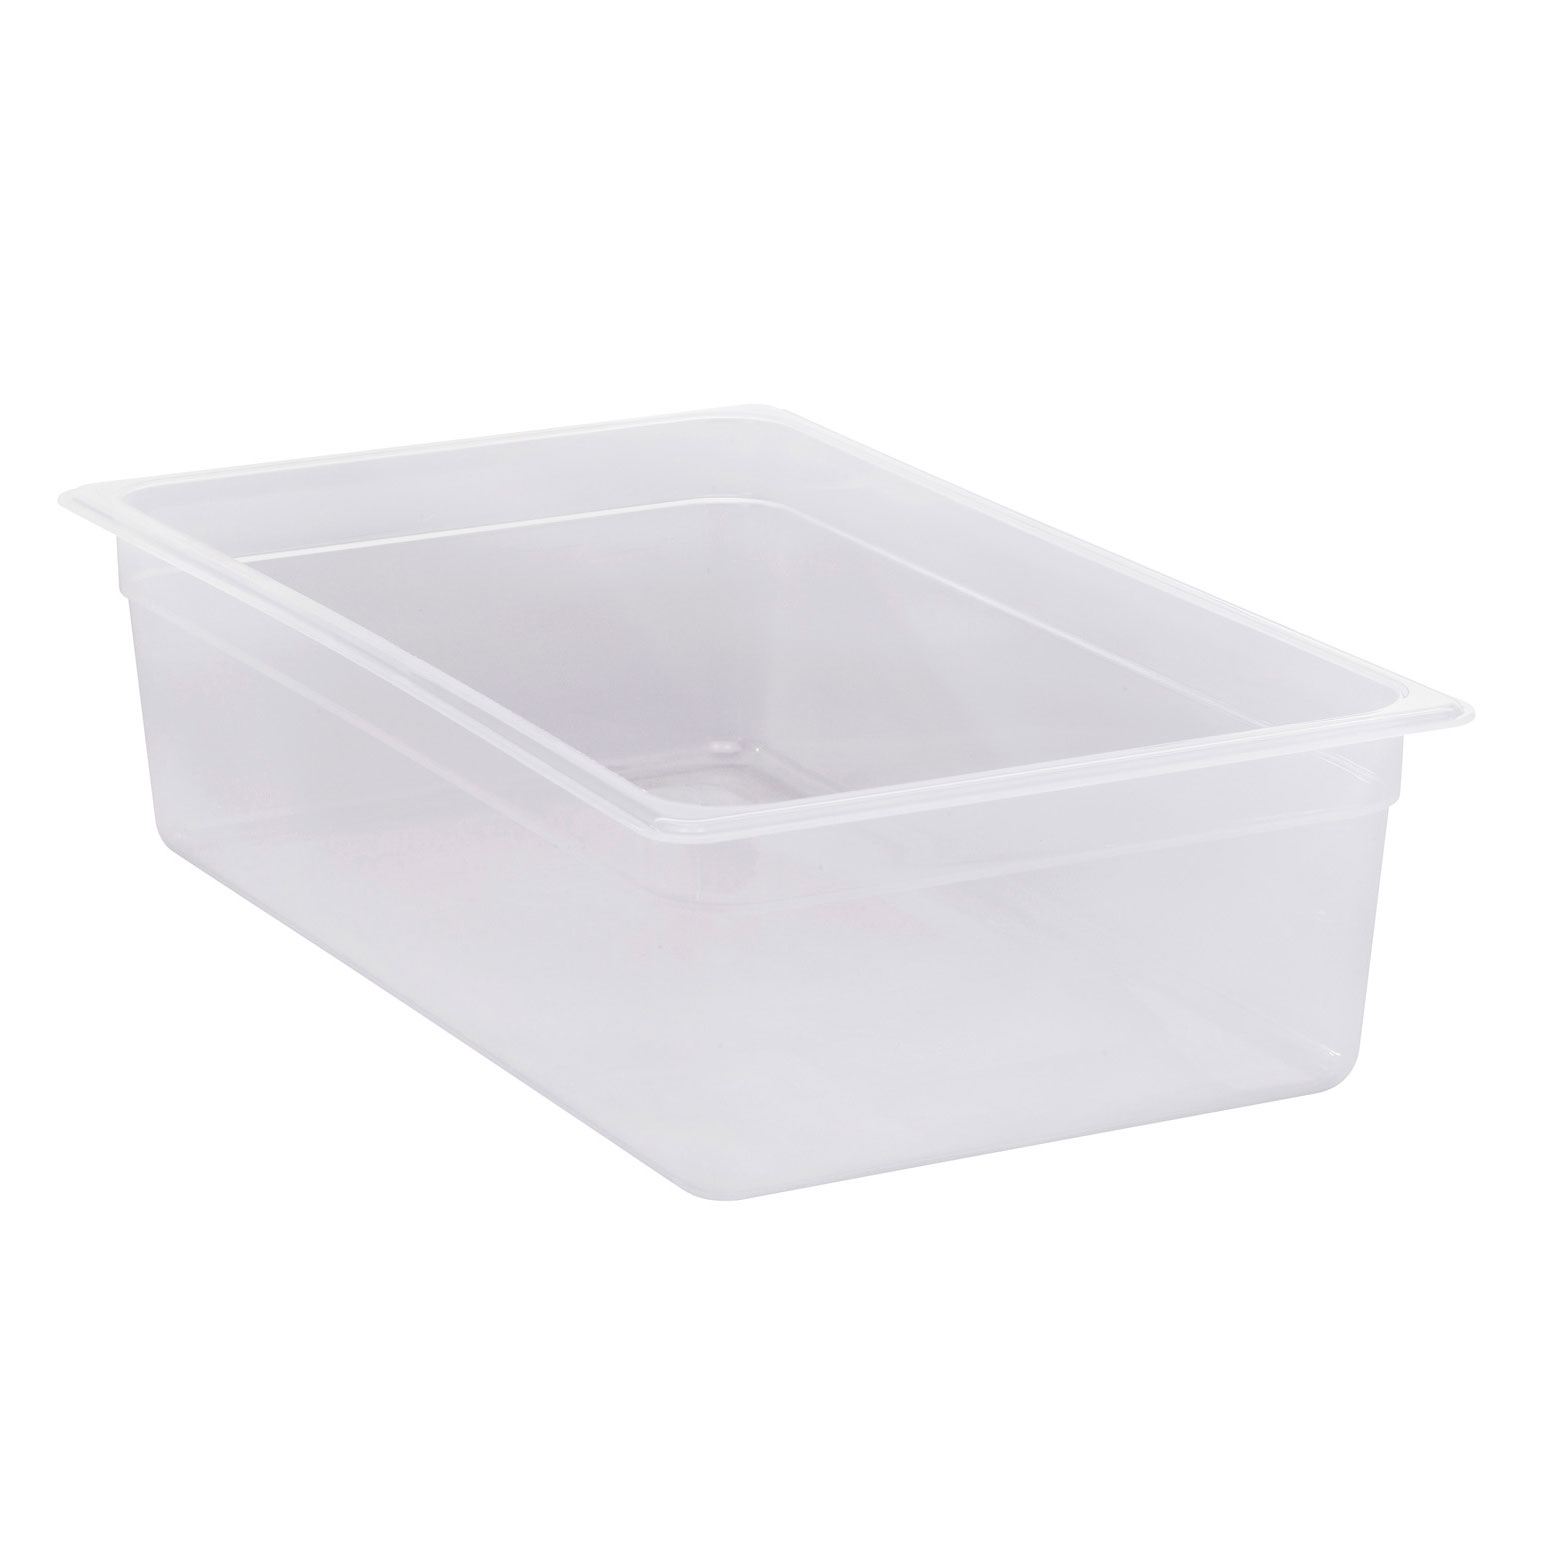 Cambro 16PP190 food pans